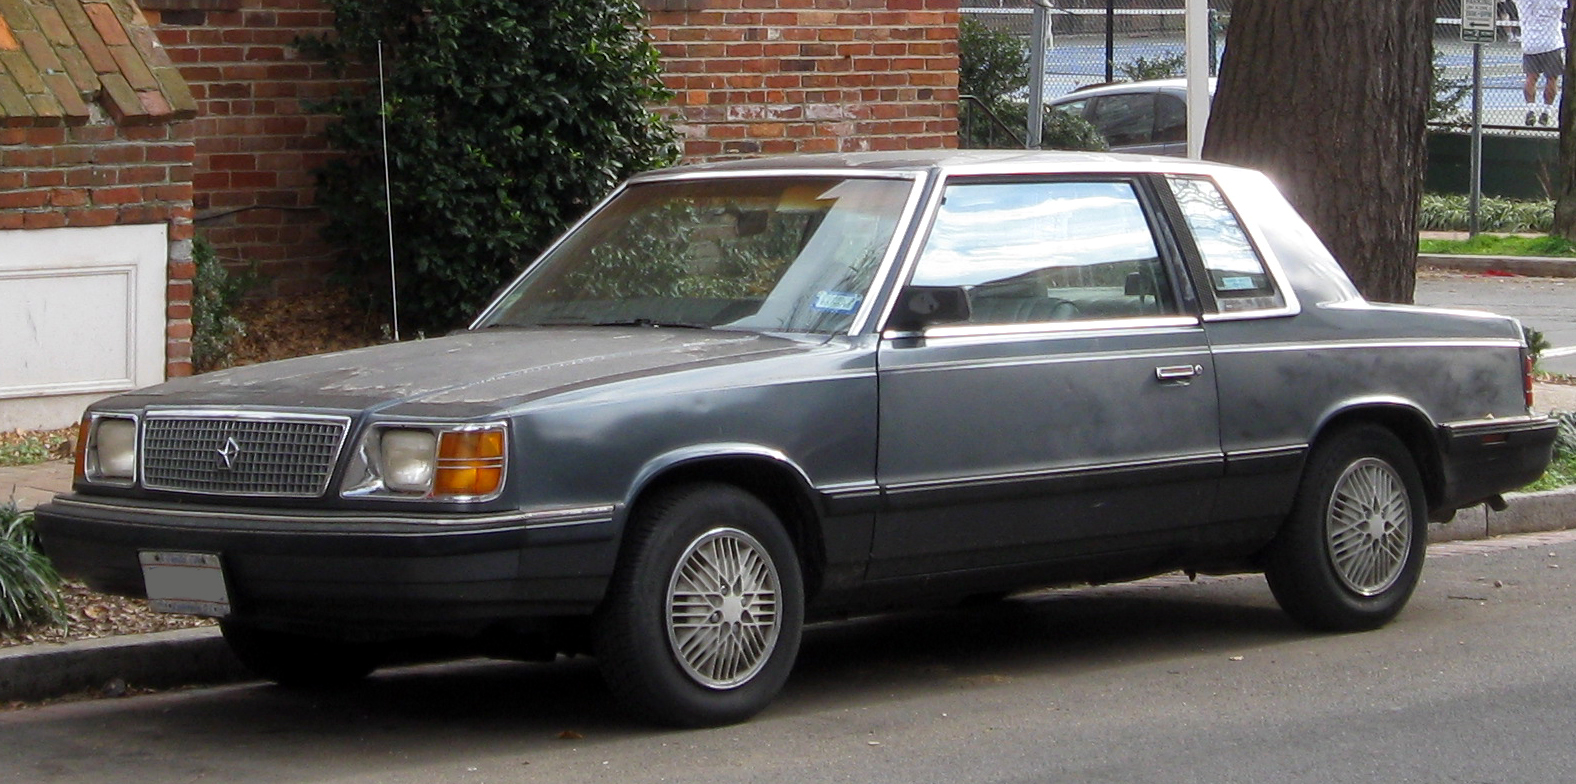 1985 Plymouth Reliant #3